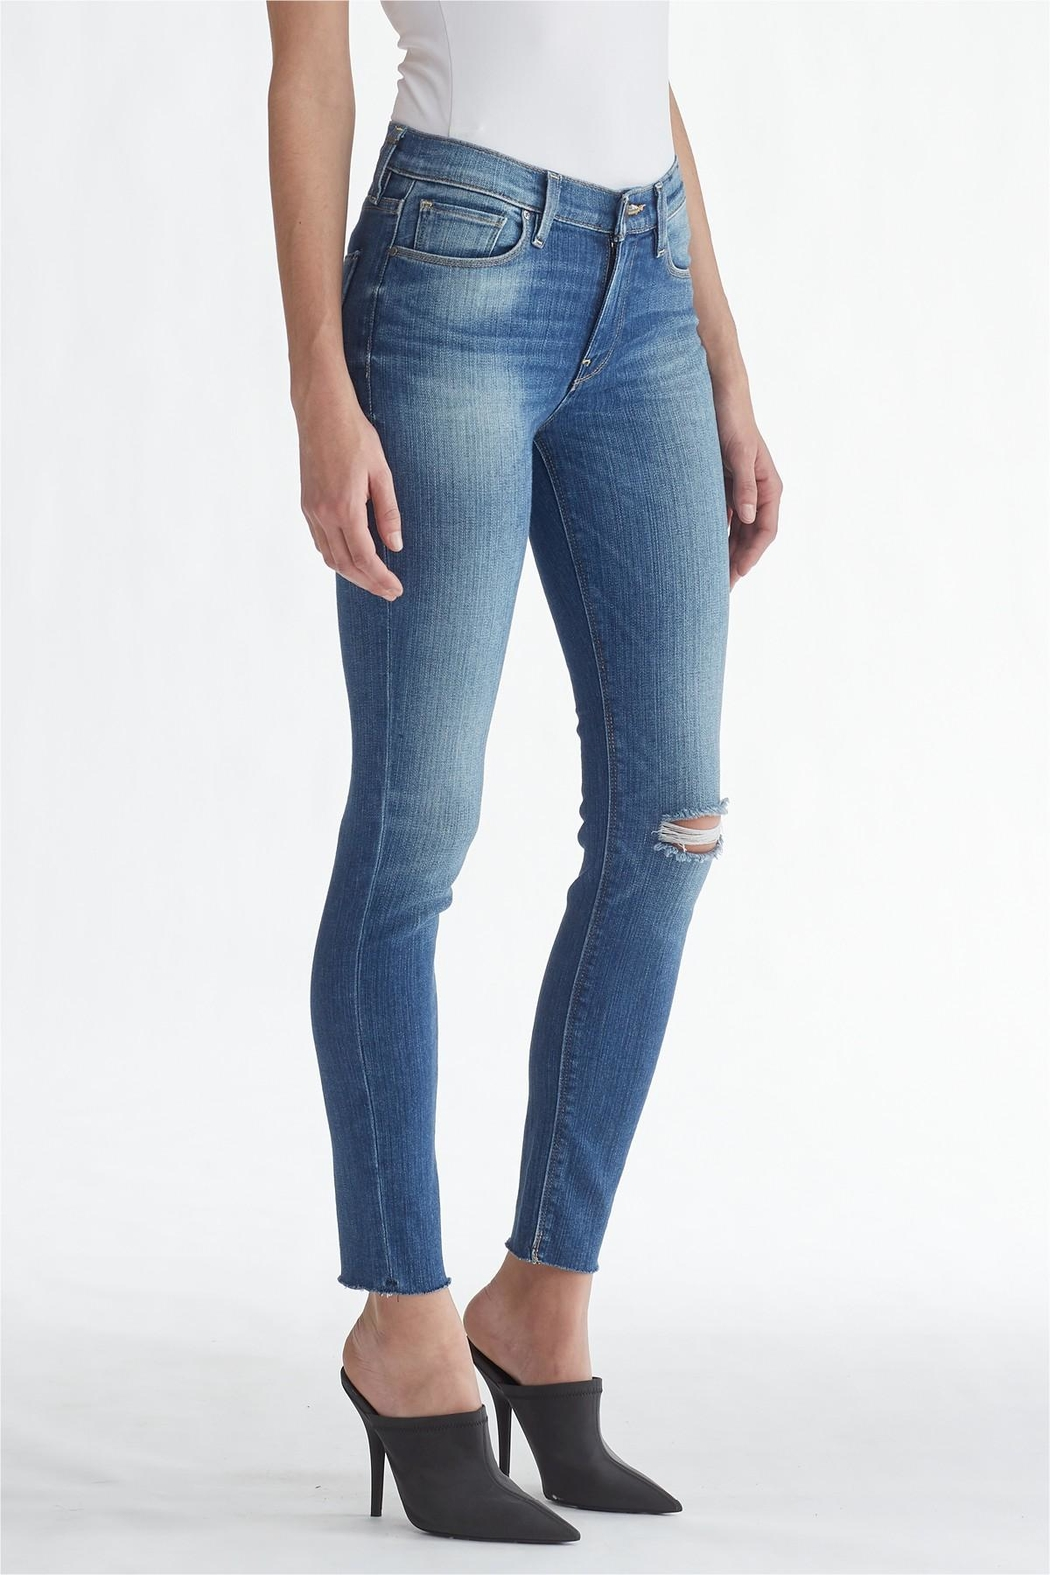 Hudson Jeans Light-Wash Ripped-Knee Ankle-Skinny - Side Cropped Image